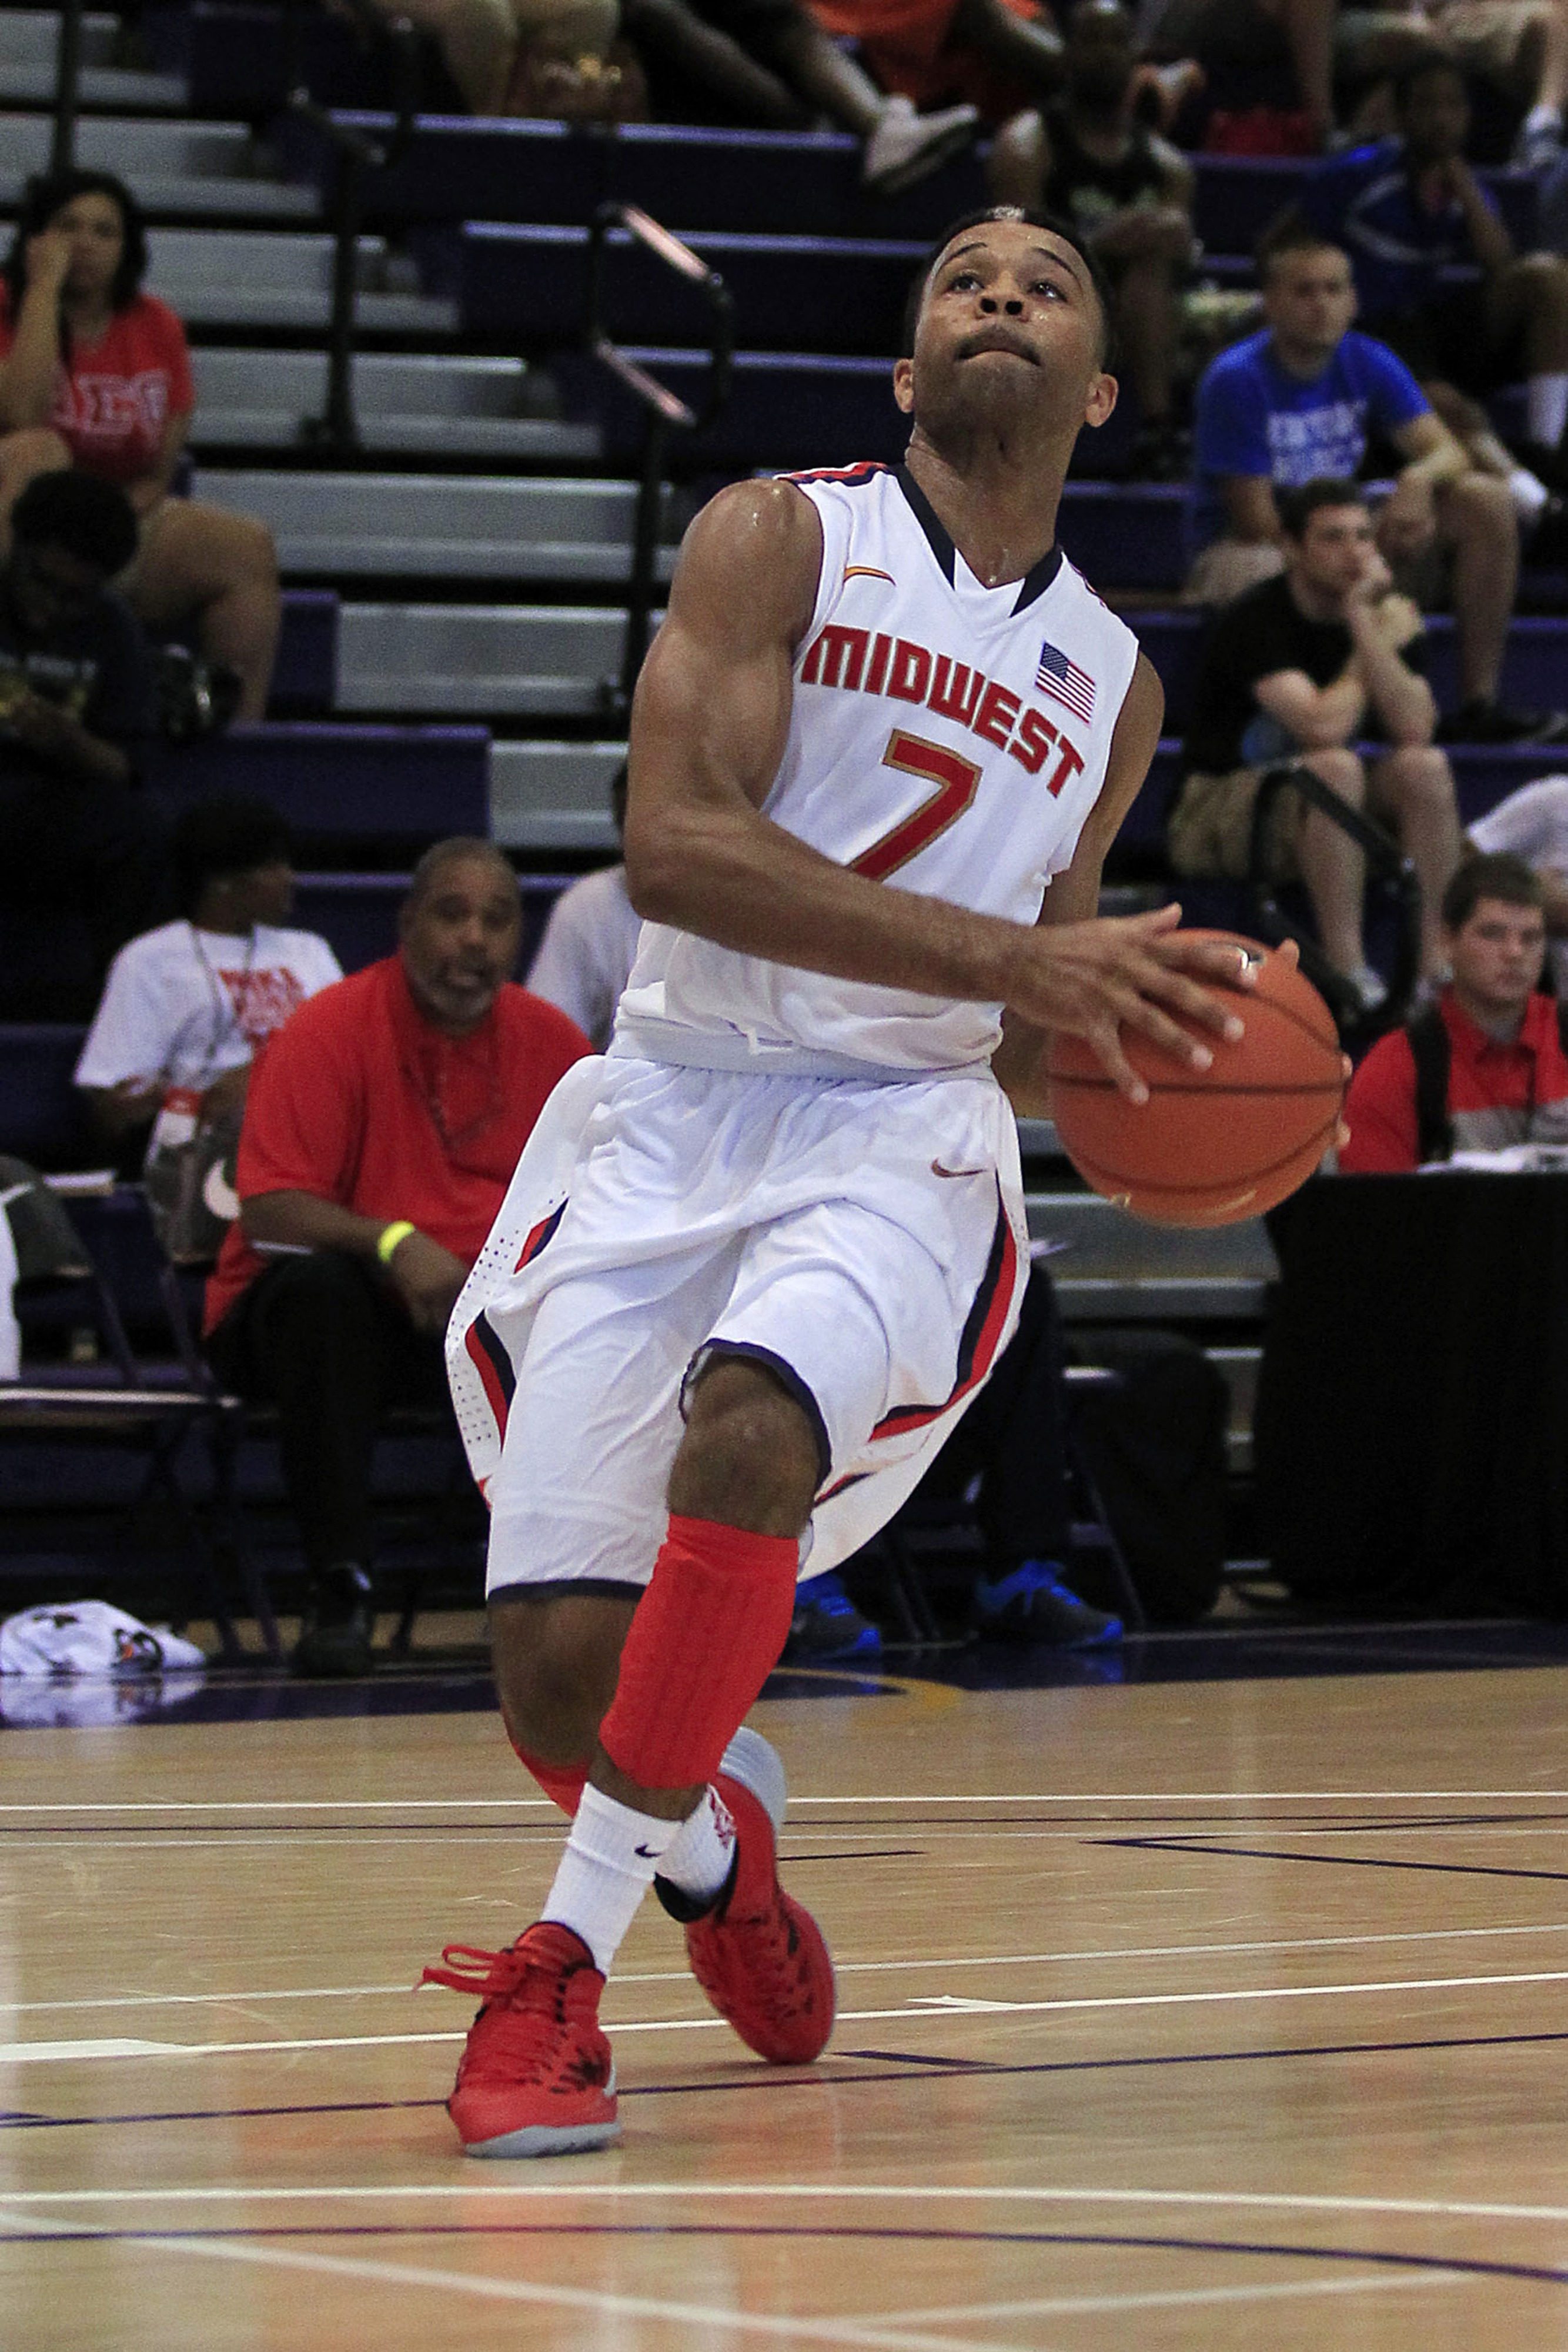 Indiana prepster James Blackmon is one of two Kentucky recruits that will announce Thursday.